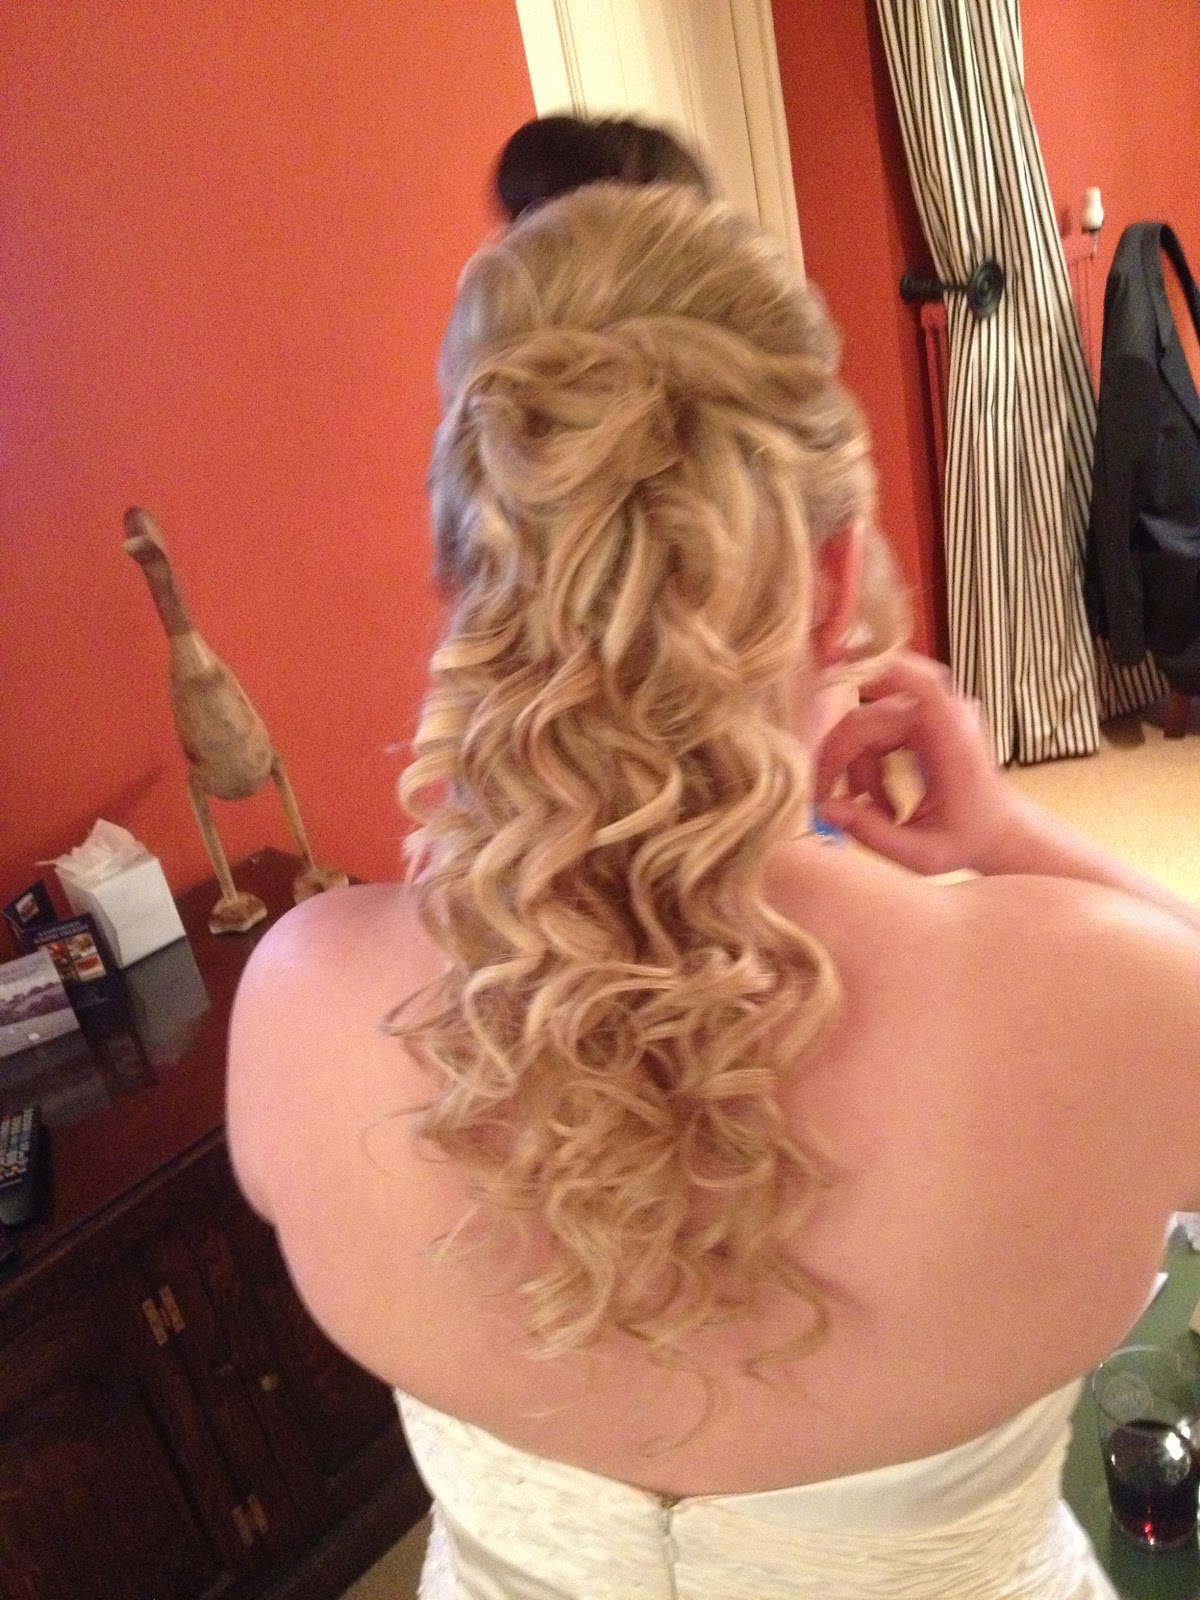 Fordham Hair Design Wedding Bridal Hair Specialist December 2012